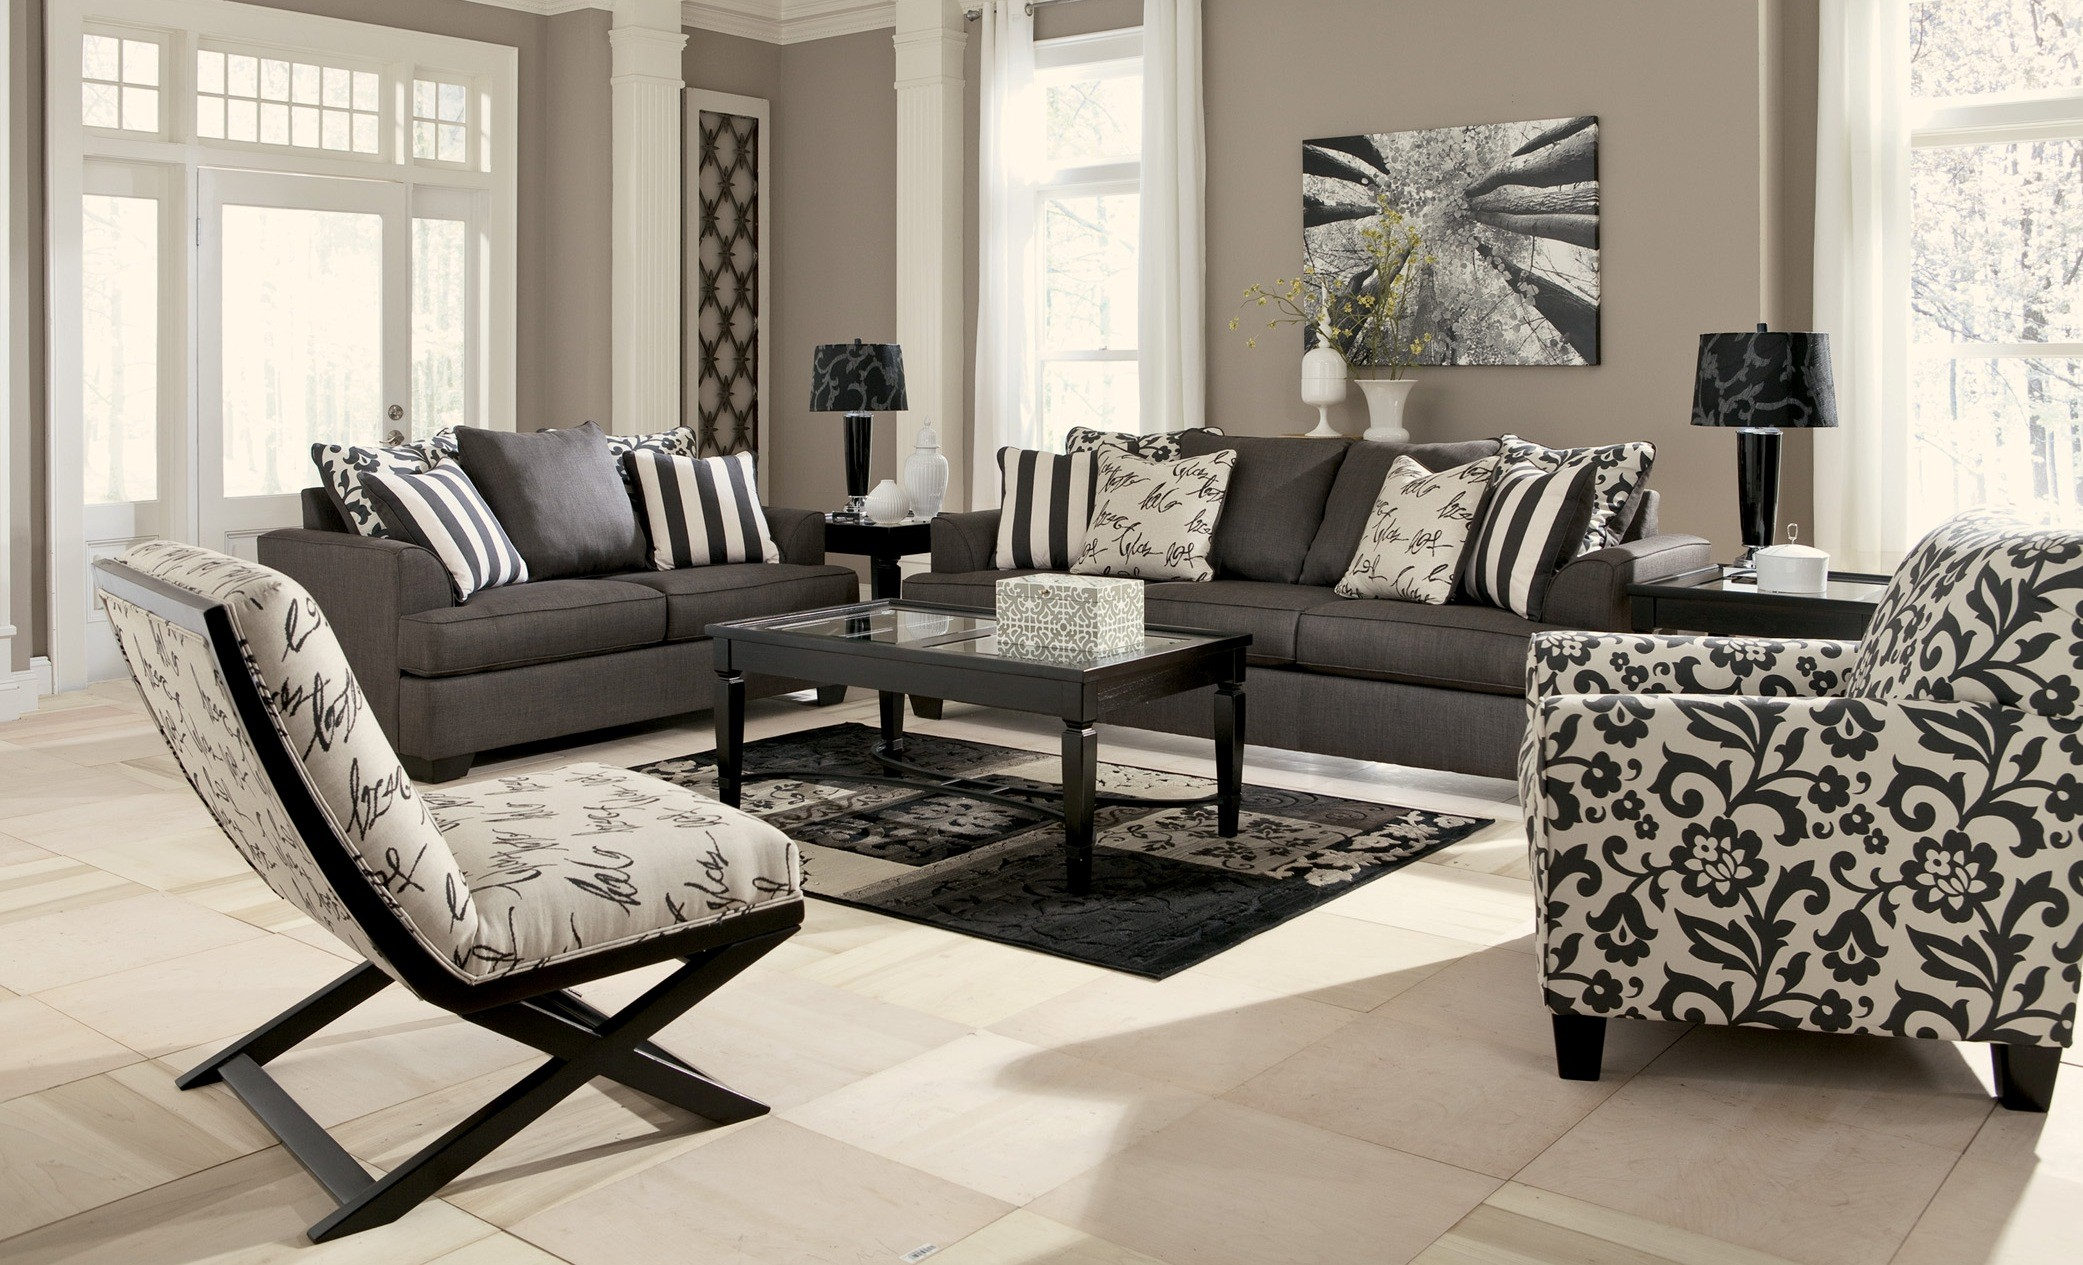 Levon charcoal living room set from ashley 73403 for Wholesale living room furniture sets